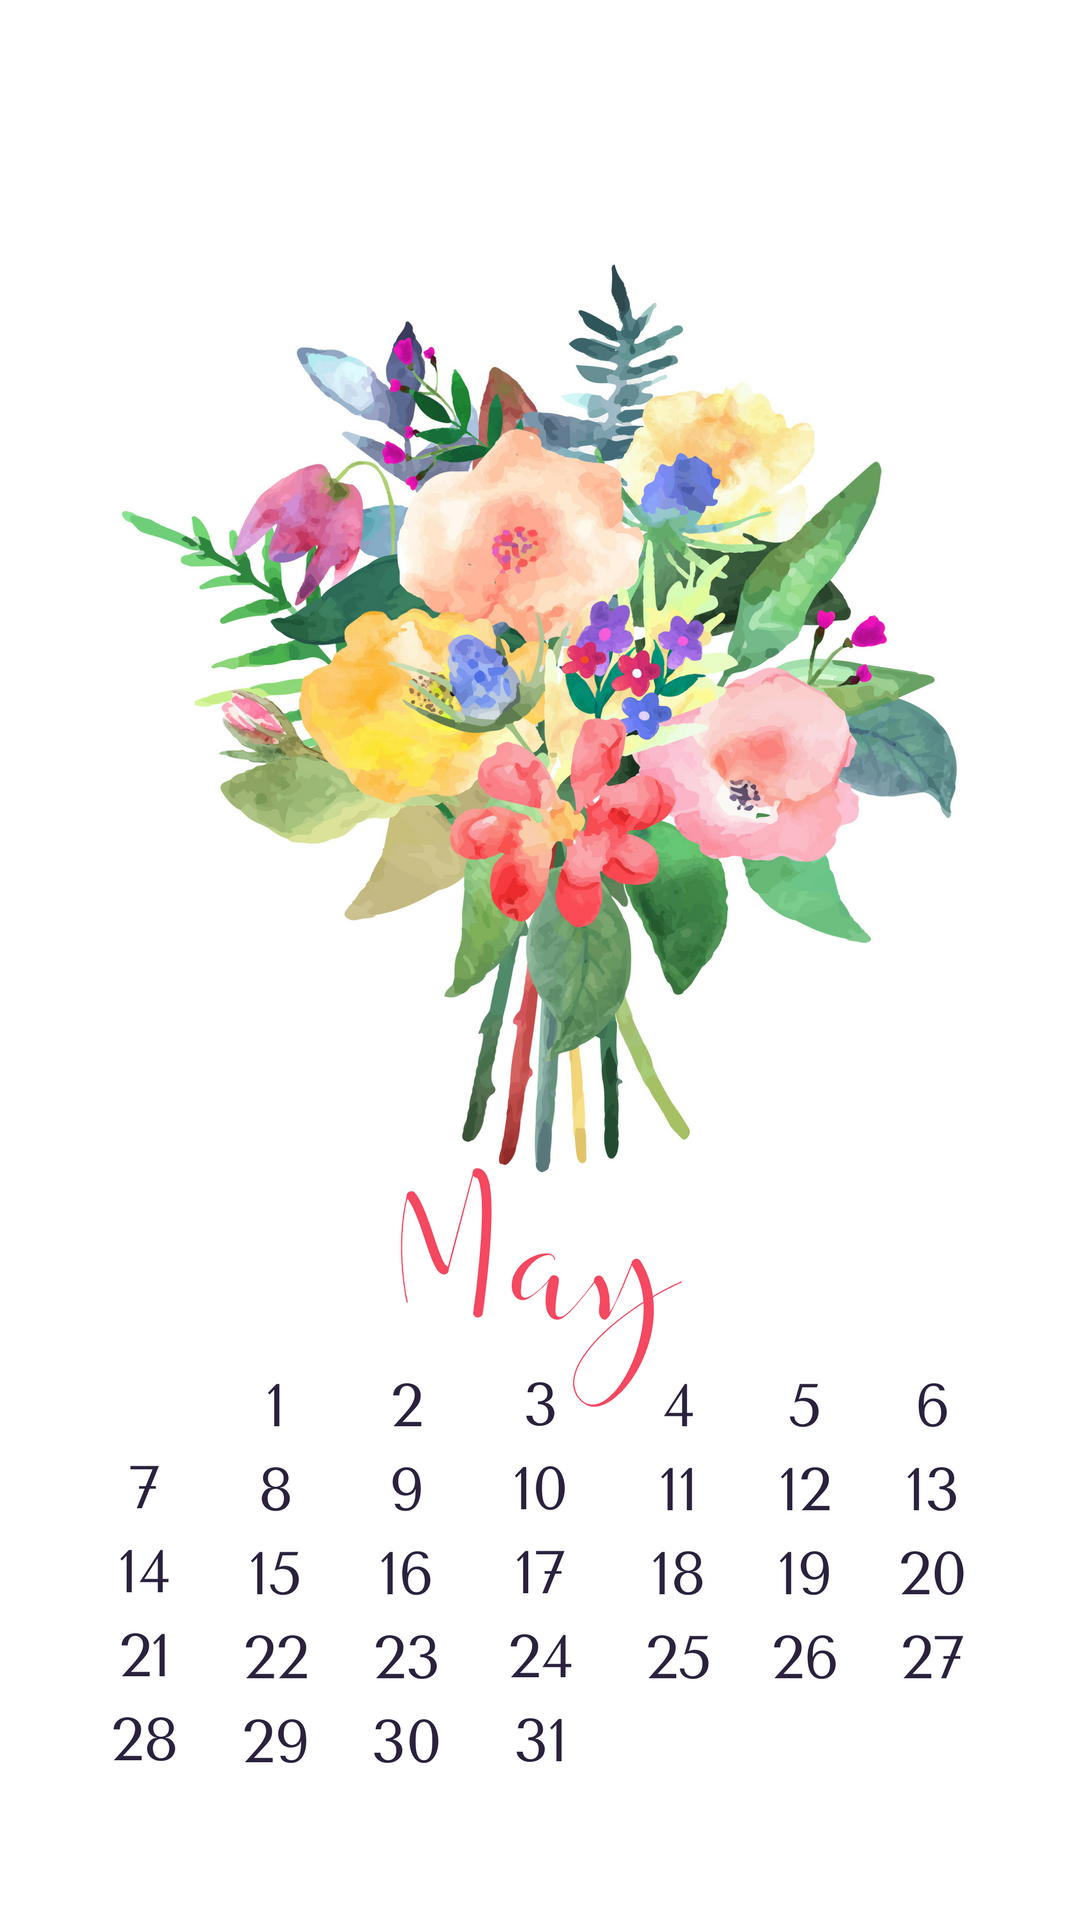 May 2018 Calendar for iPhone